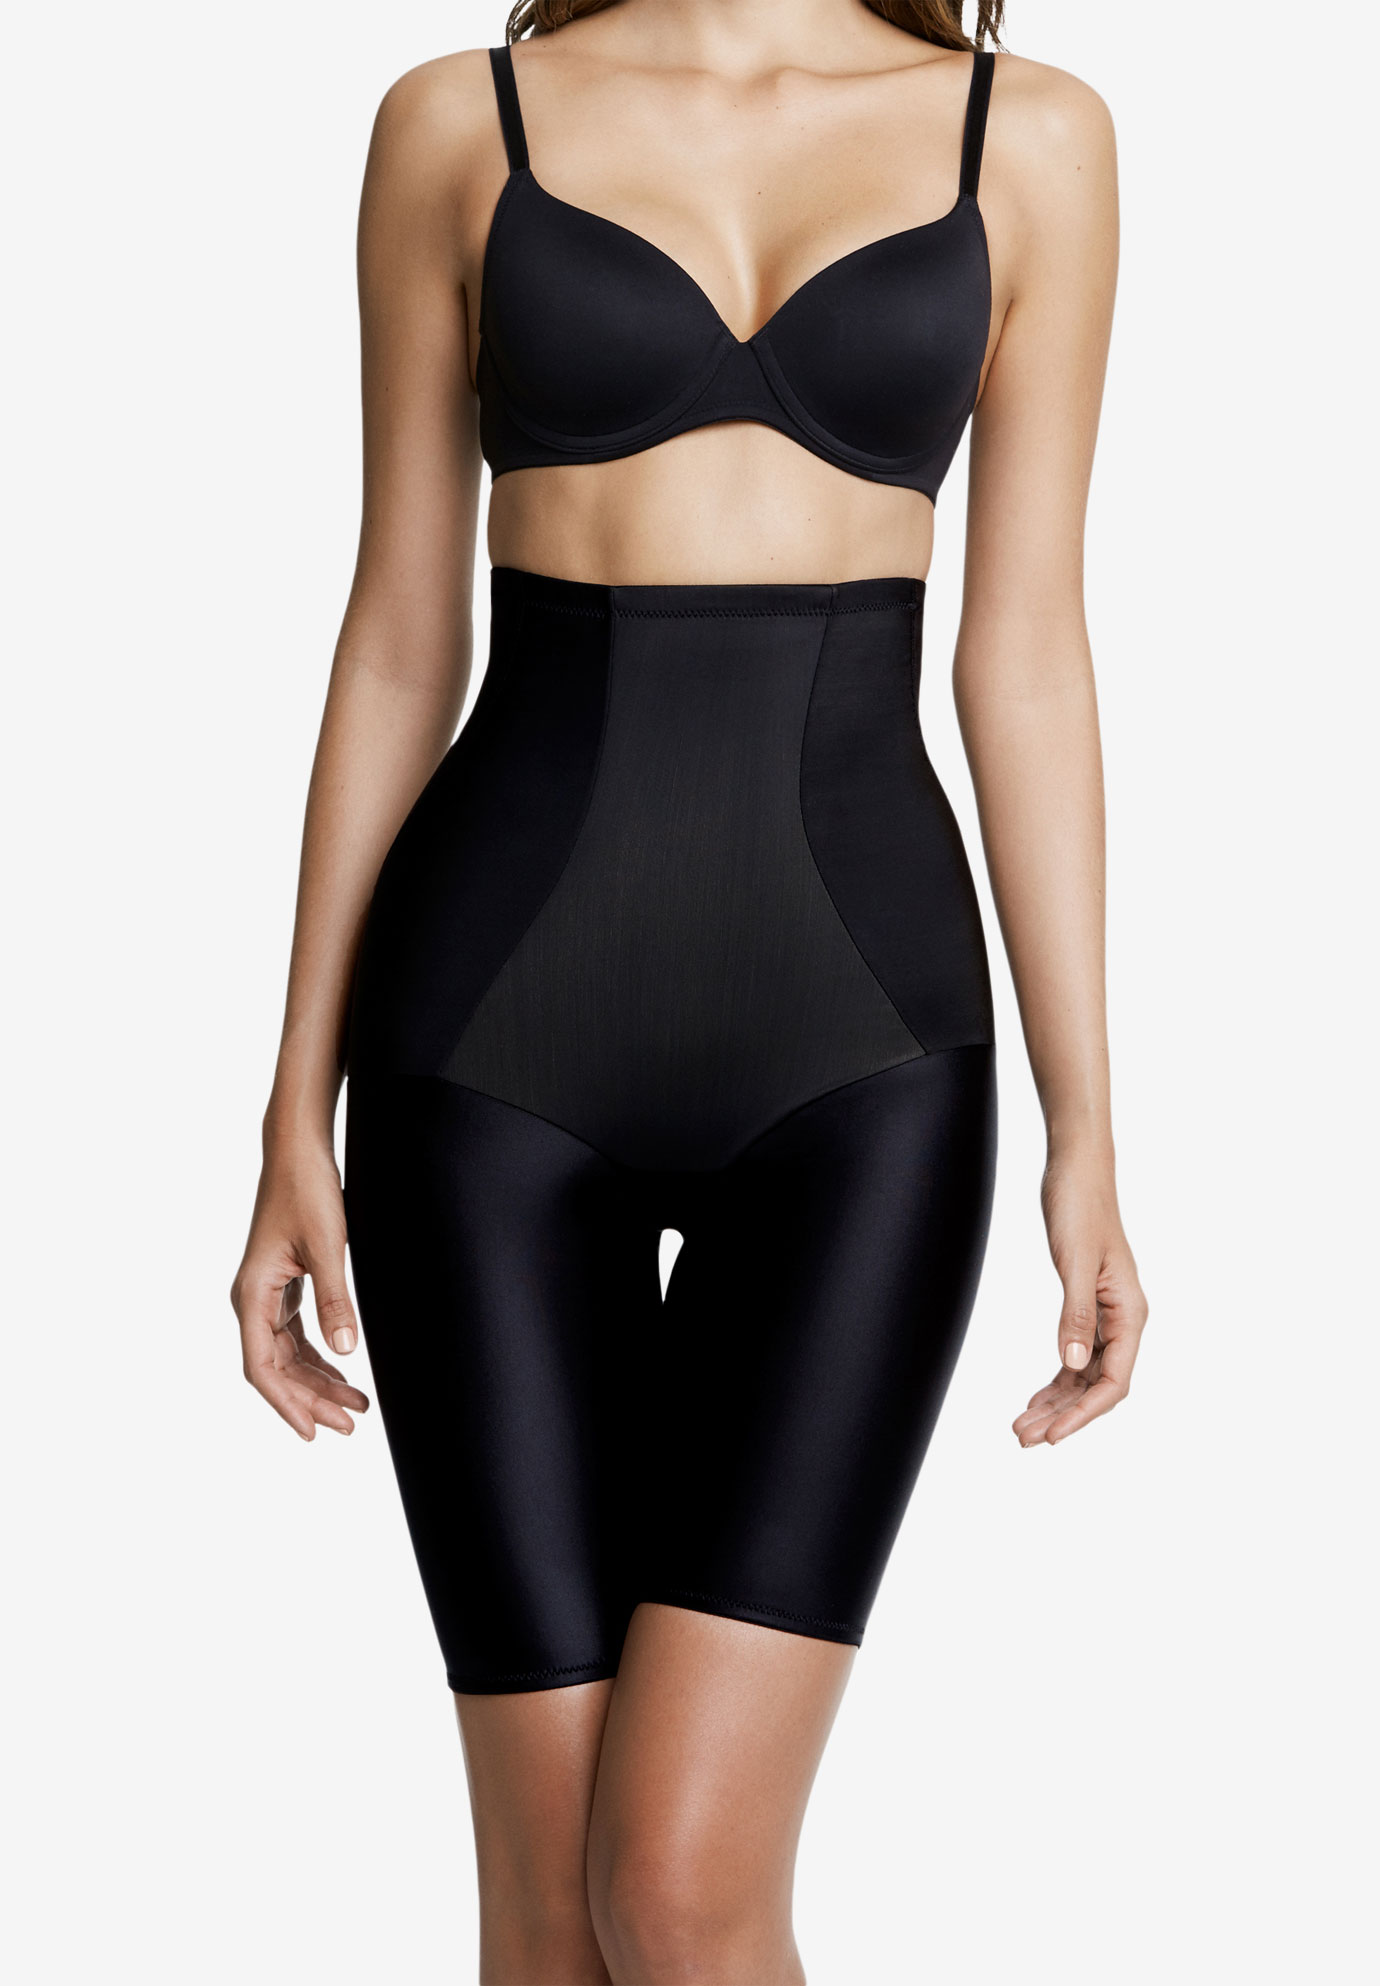 Kate Medium-Control High-Waist Thigh Slimmer,